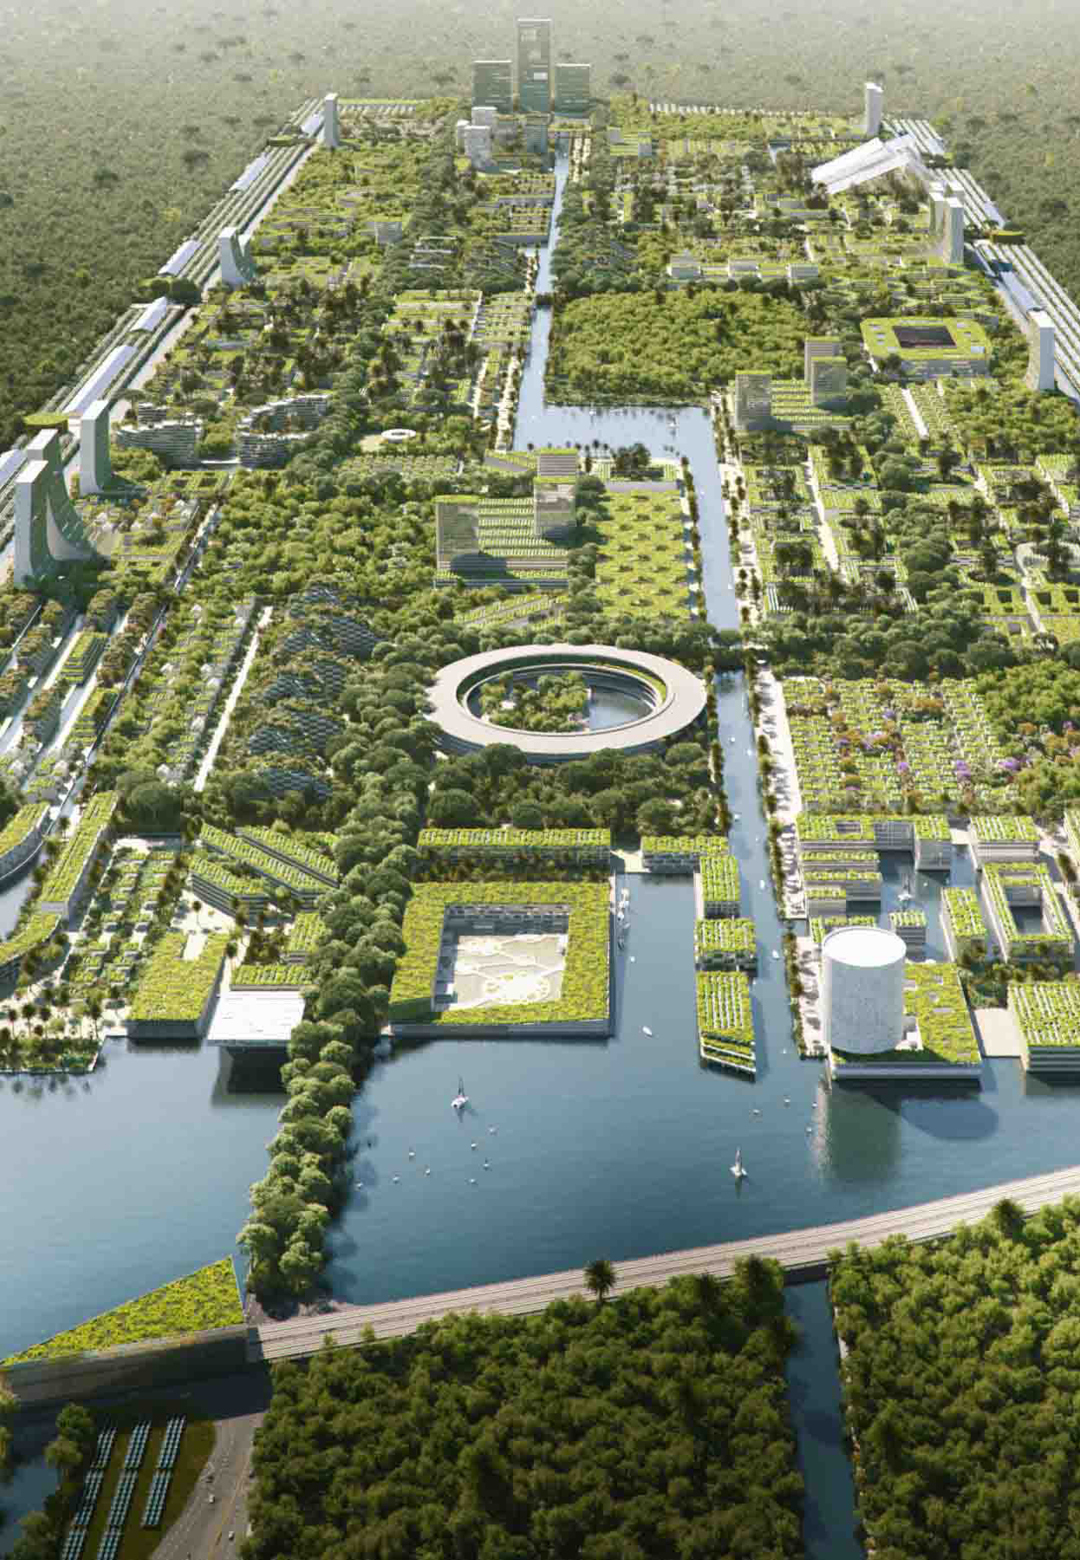 Proposed design for the Smart Forest City | Smart Forest City | Stefano Boeri Architetti | STIRworld